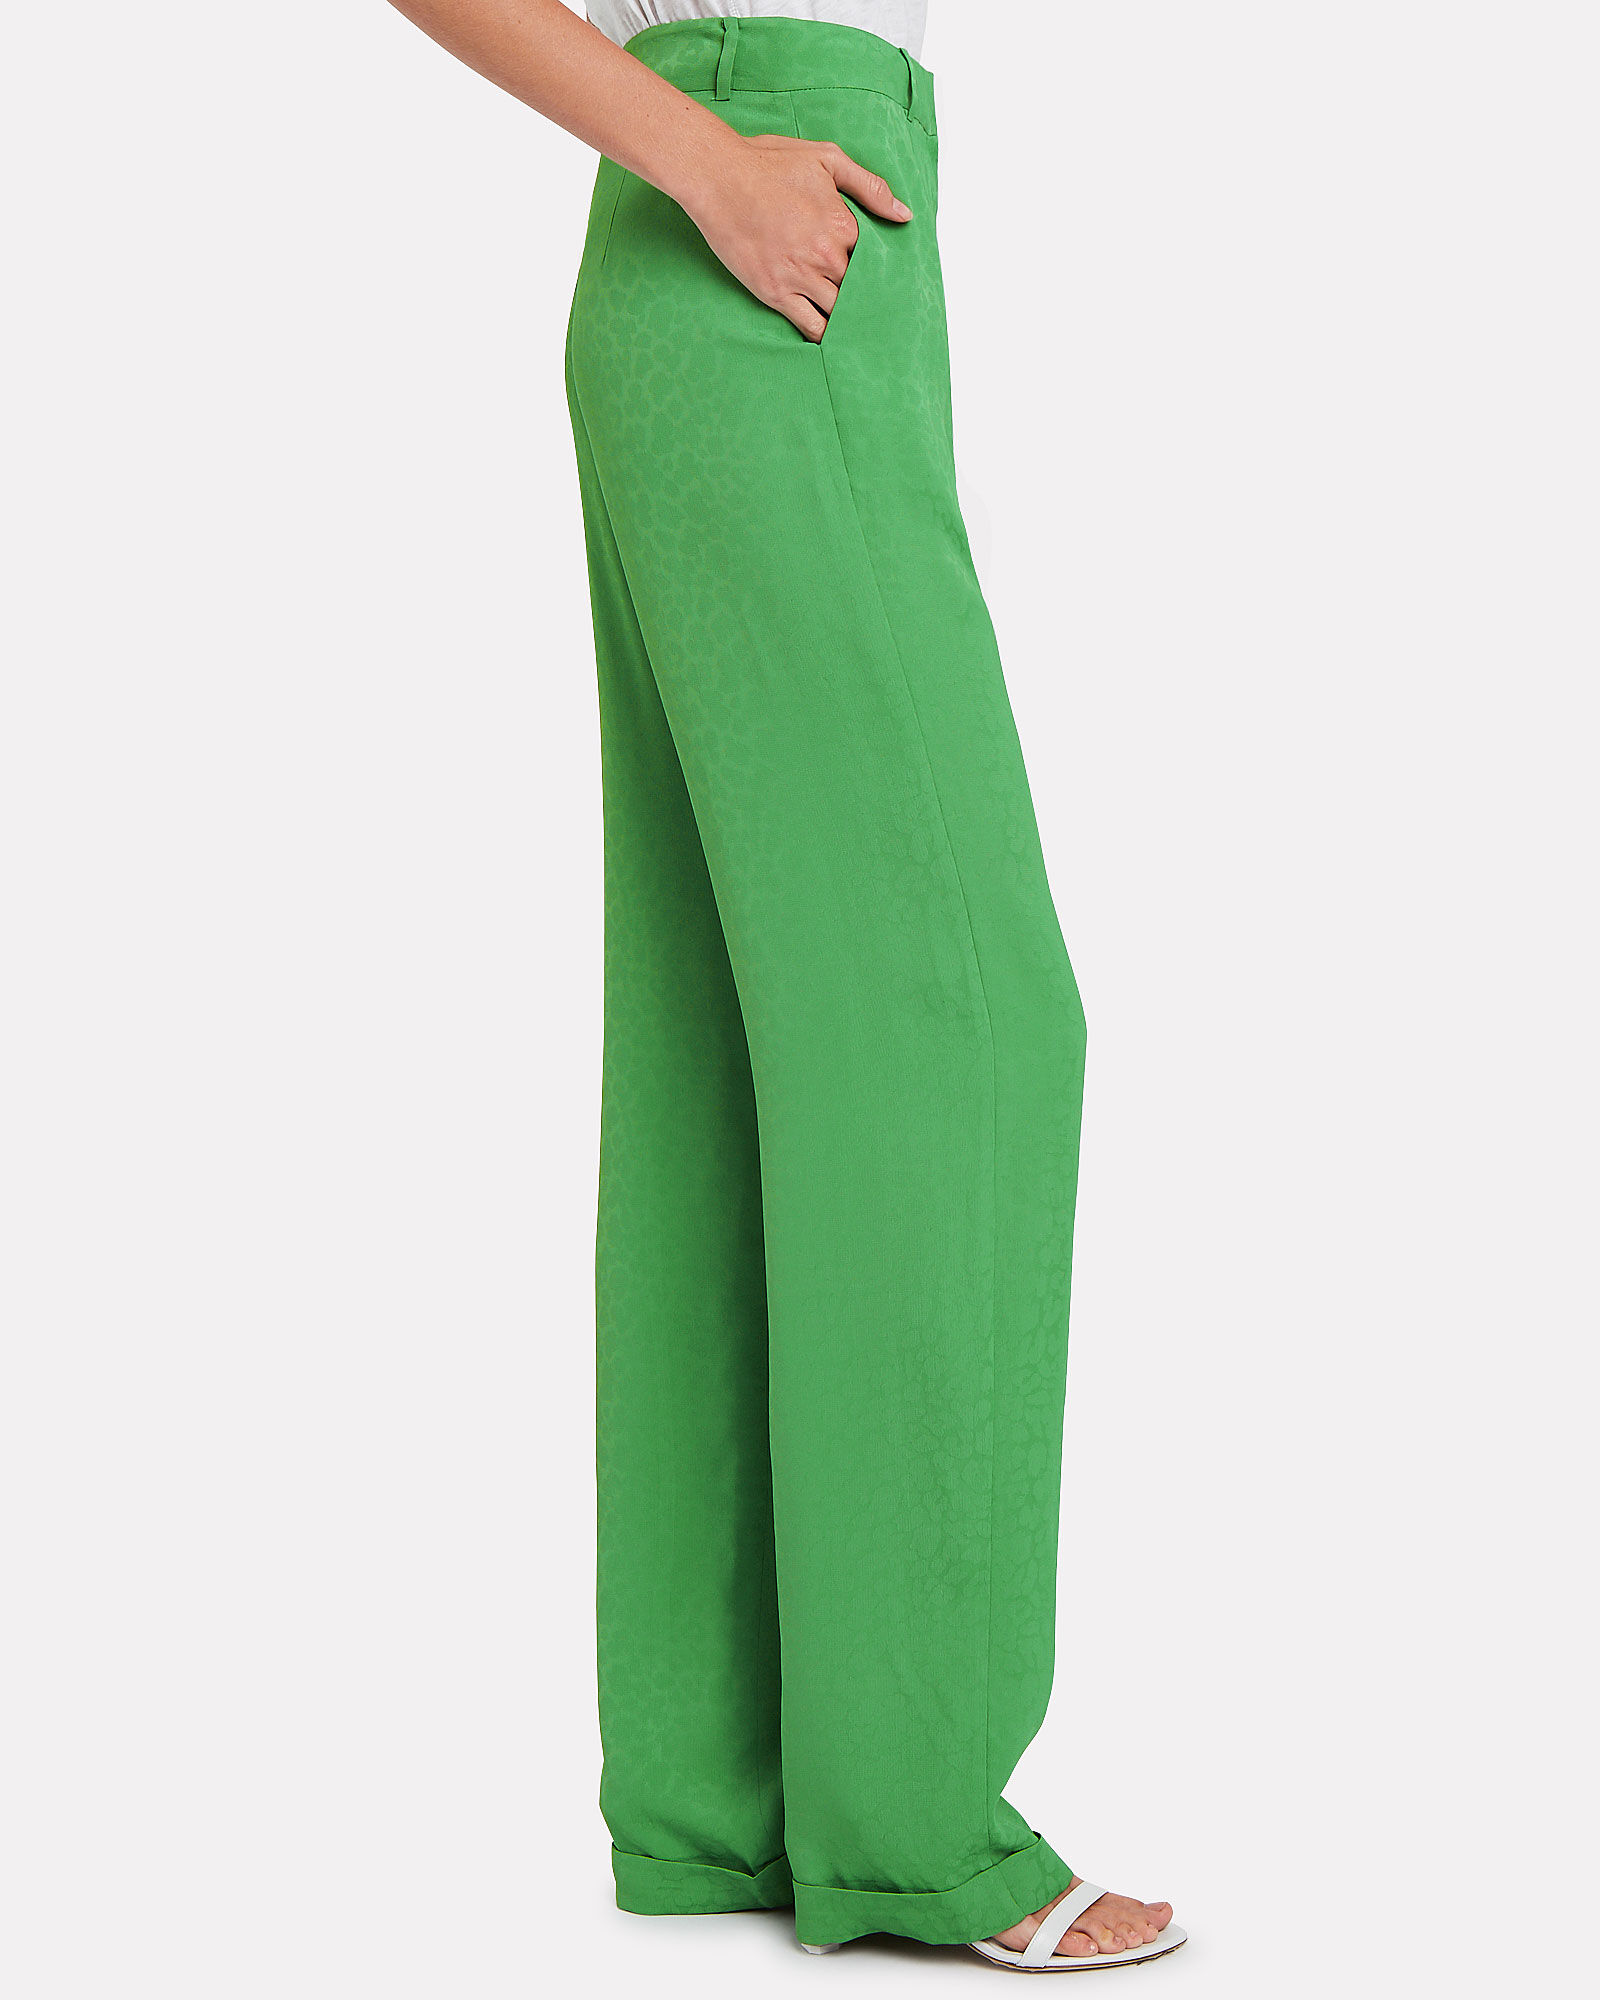 Leopard Jacquard Suiting Trousers, GREEN/LEOPARD, hi-res